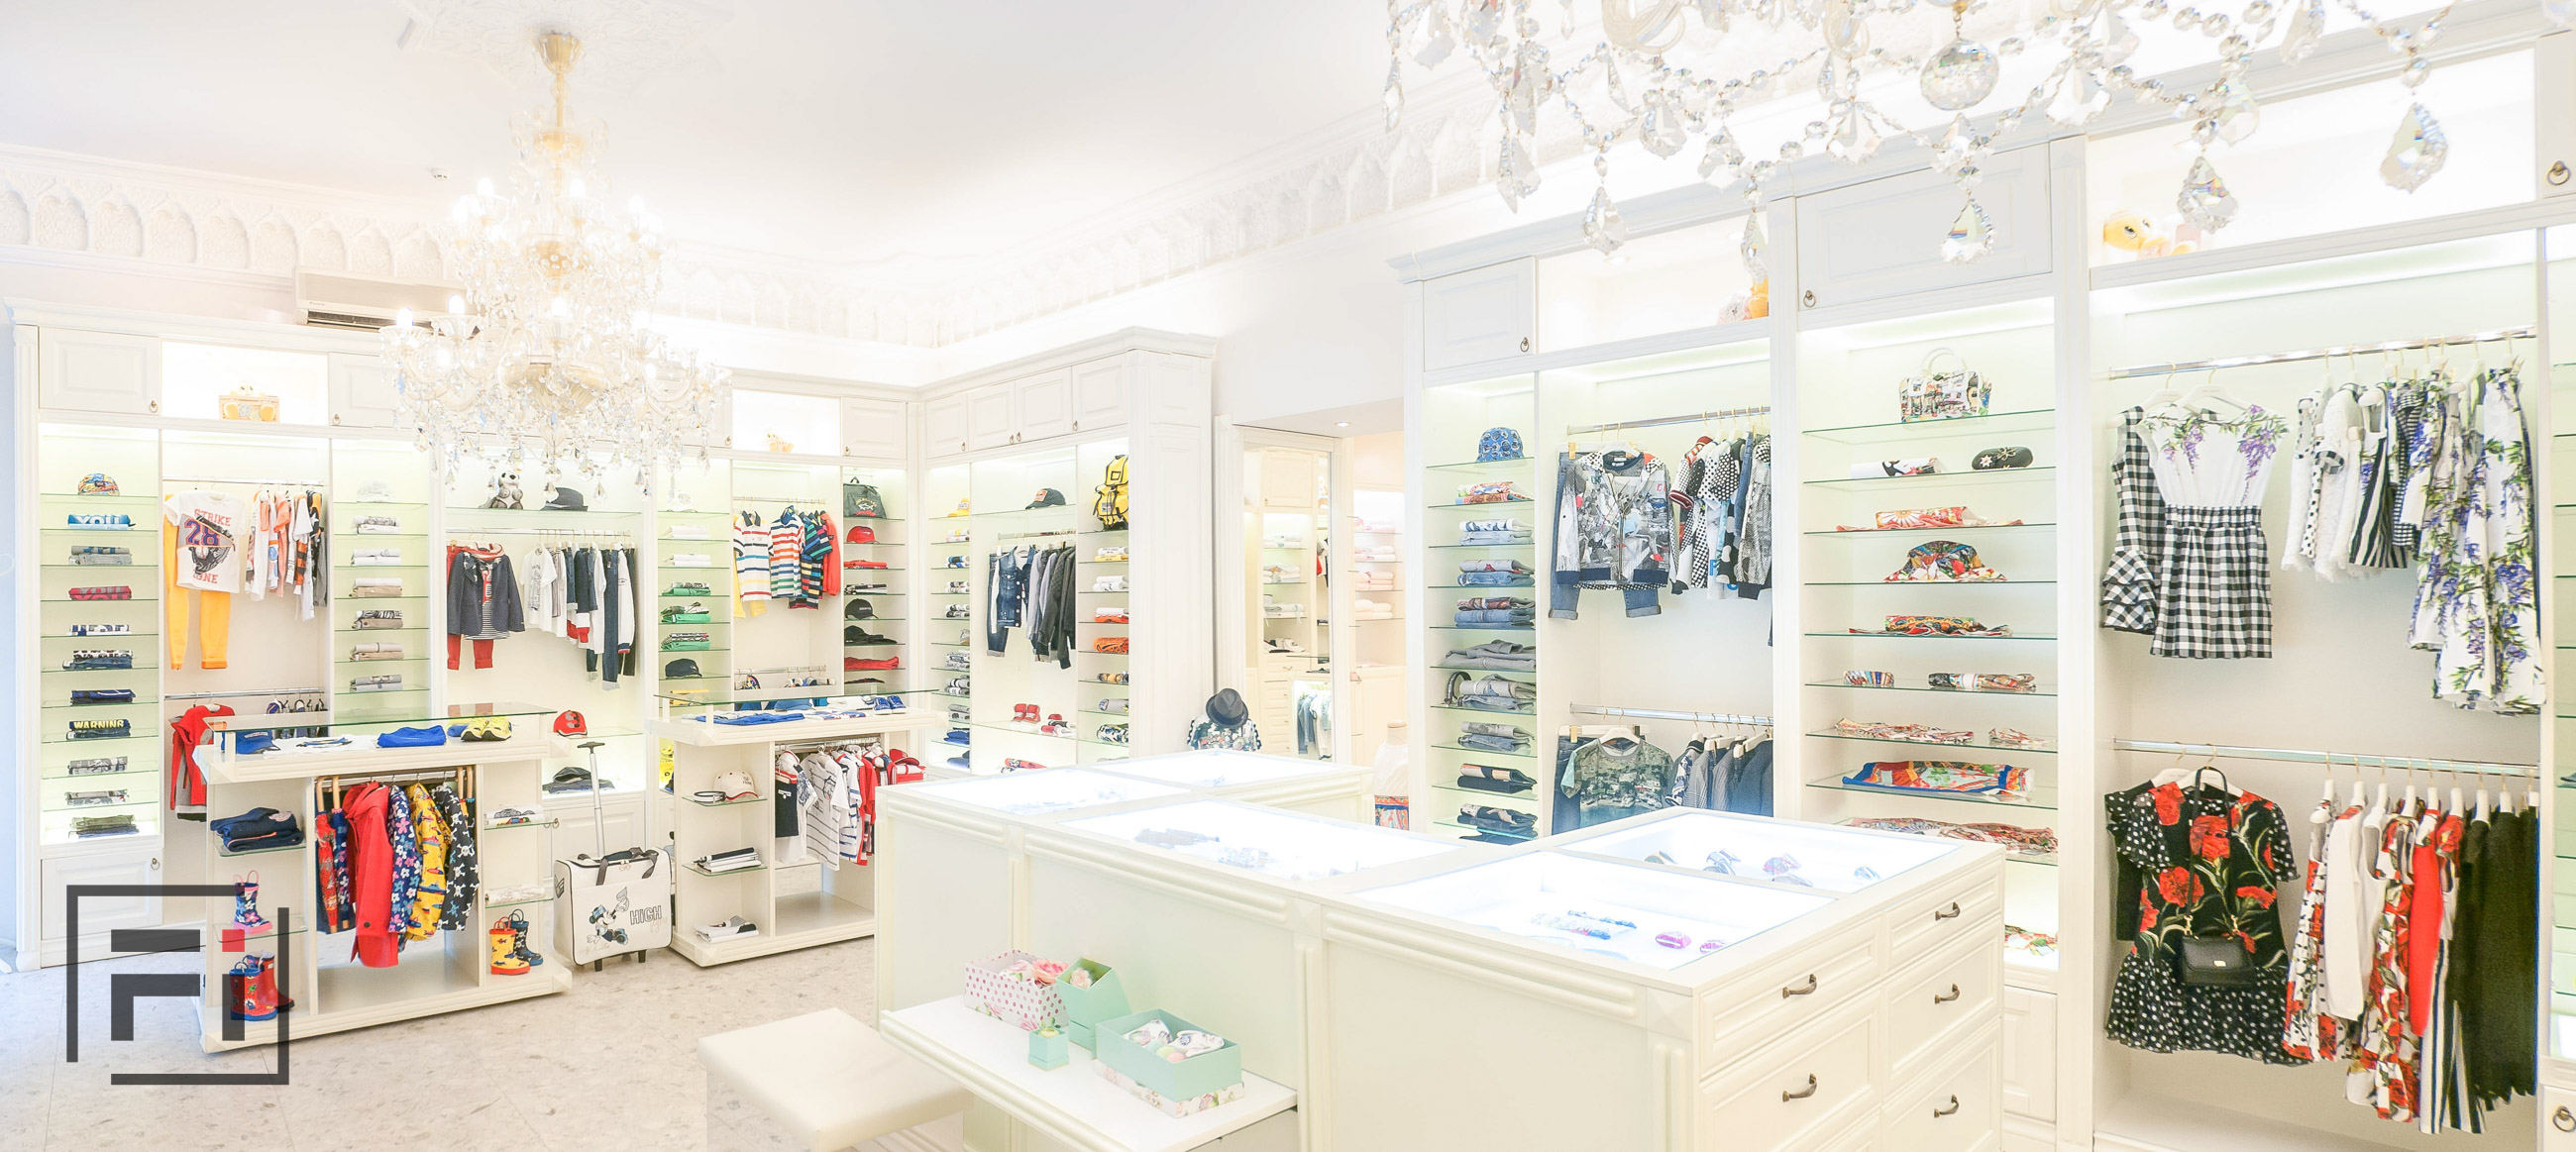 Baby Marlen Helen real estate photo editing outsourcing outsource real estate photo editing commercial white interior of white store for children Kyiv photo by Fantastic Imago-5